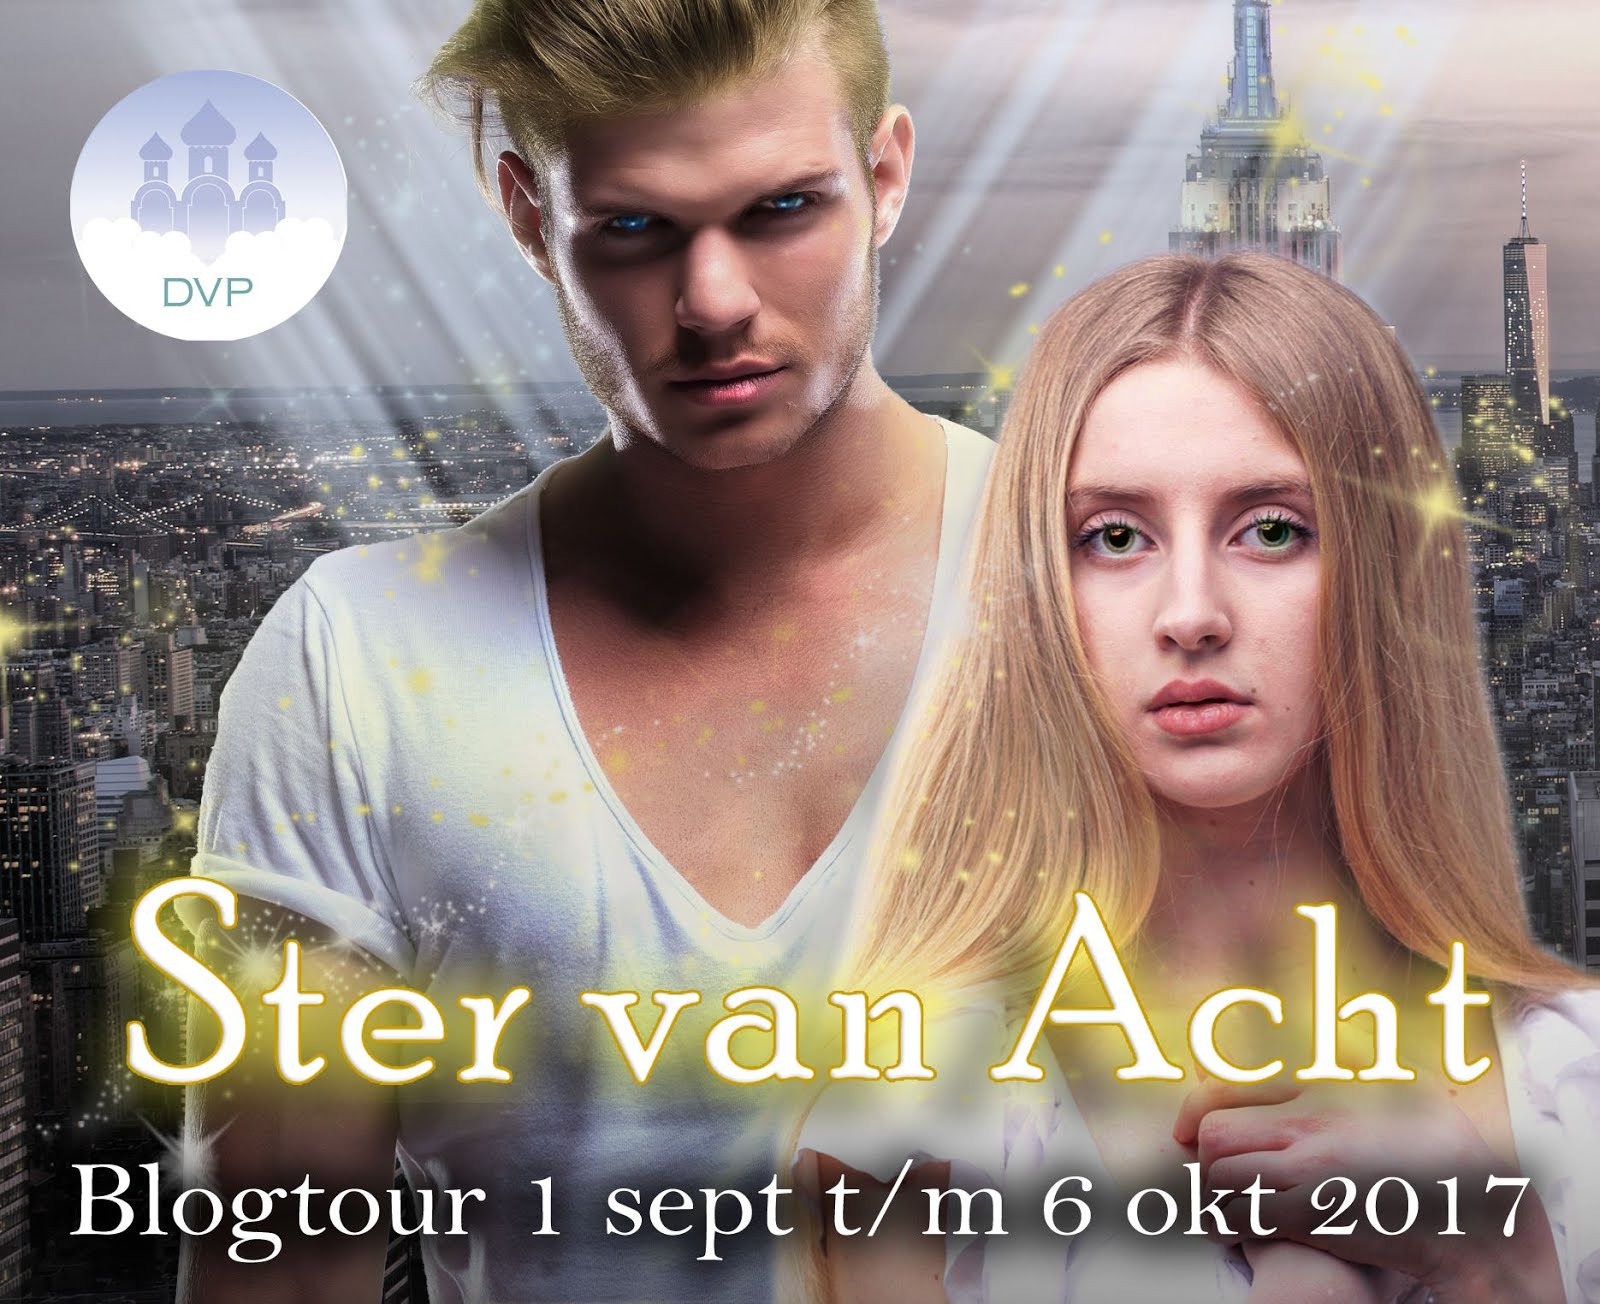 FOLLOW THE DUTCH BLOG TOUR!